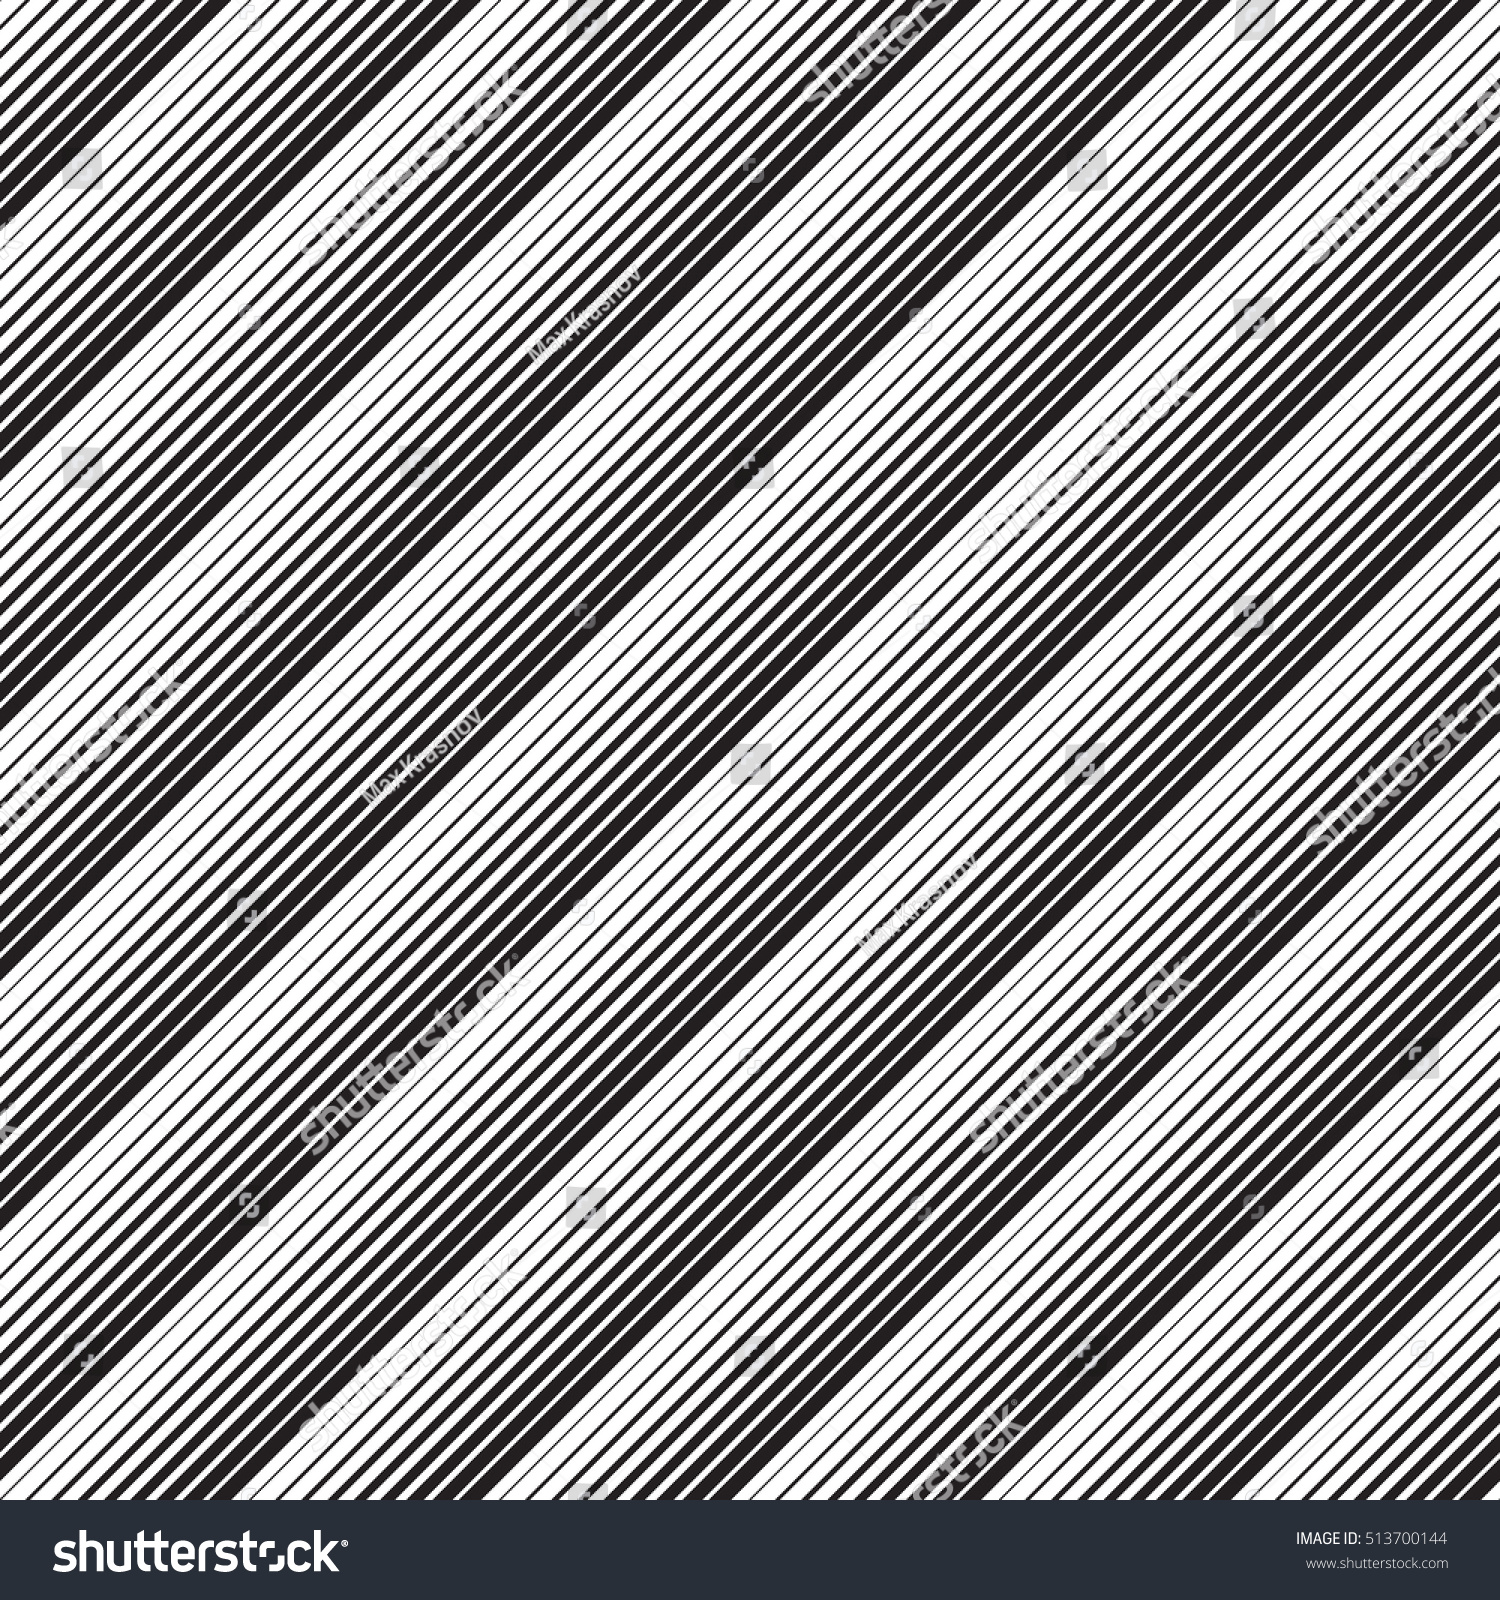 And black diagonal stripes background seamless background or wallpaper - Seamless Diagonal Stripe And Line Pattern Vector Black And White Background Minimal Geometric Wallpaper